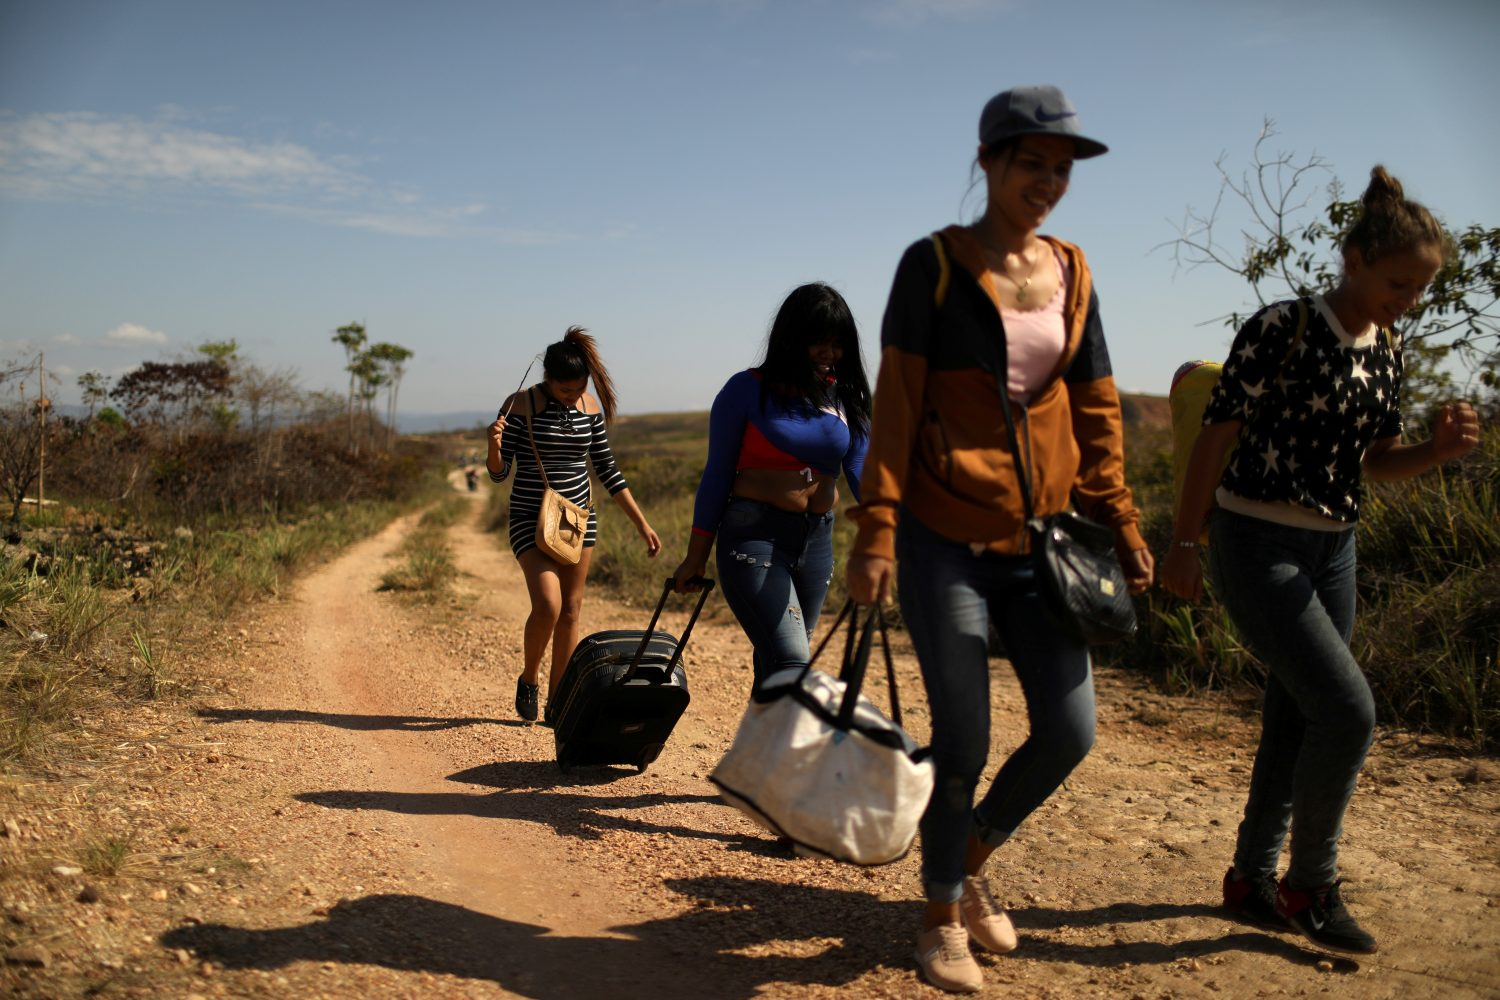 FILE PHOTO: Venezuelan migrants walk along a trail into Brazil, in the border city of Pacaraima, Brazil, April 11, 2019. REUTERS/Pilar Olivares/File Photo